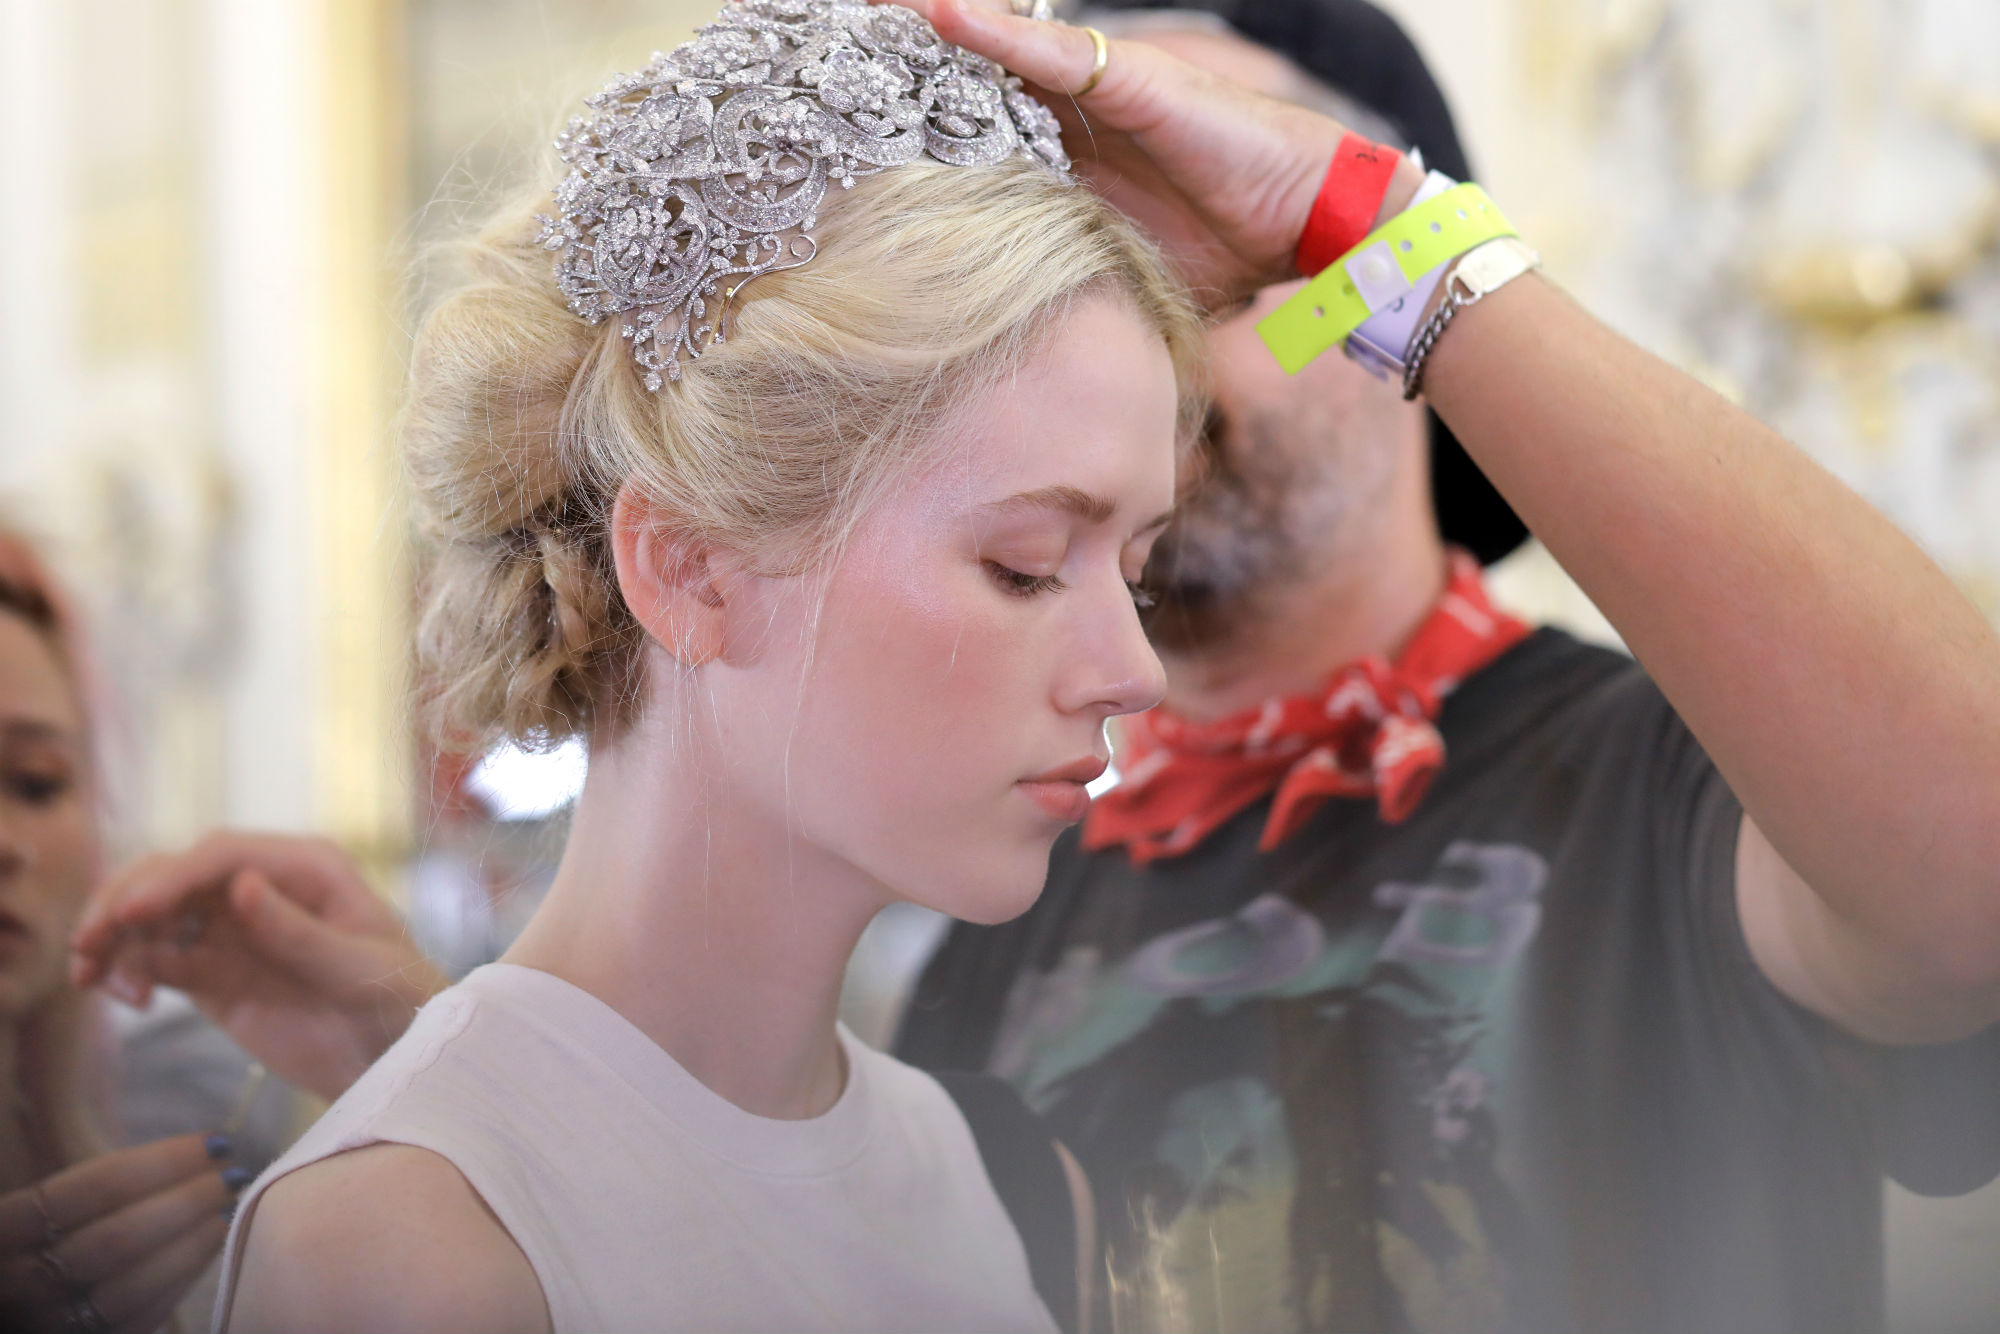 An intricate pearl hairstyle was created during the Ralph & Russo AW19 show